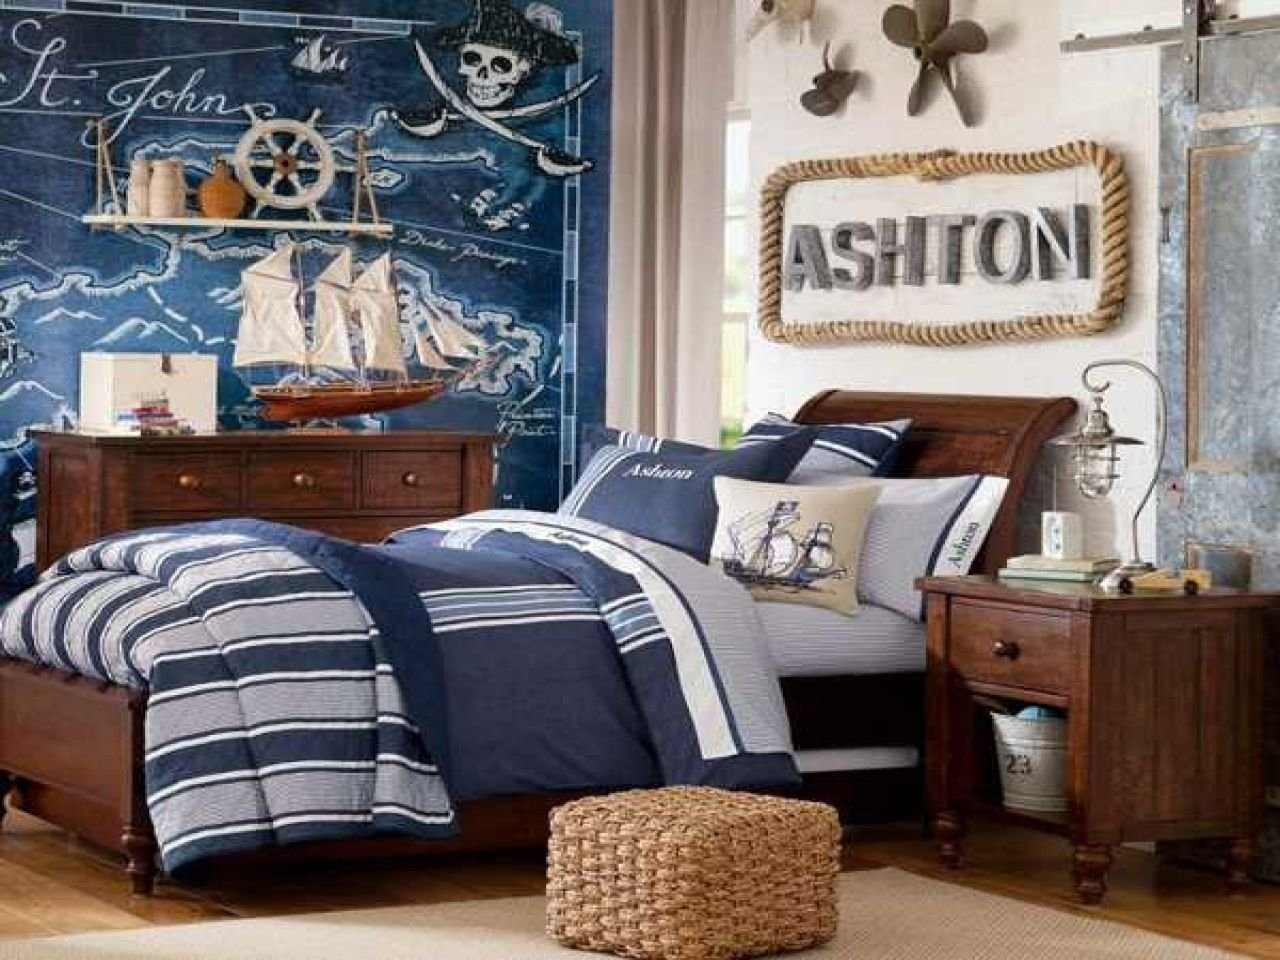 barn-boy-furniture-pottery-barn-boys-room-ideas-excellent-kids-rooms